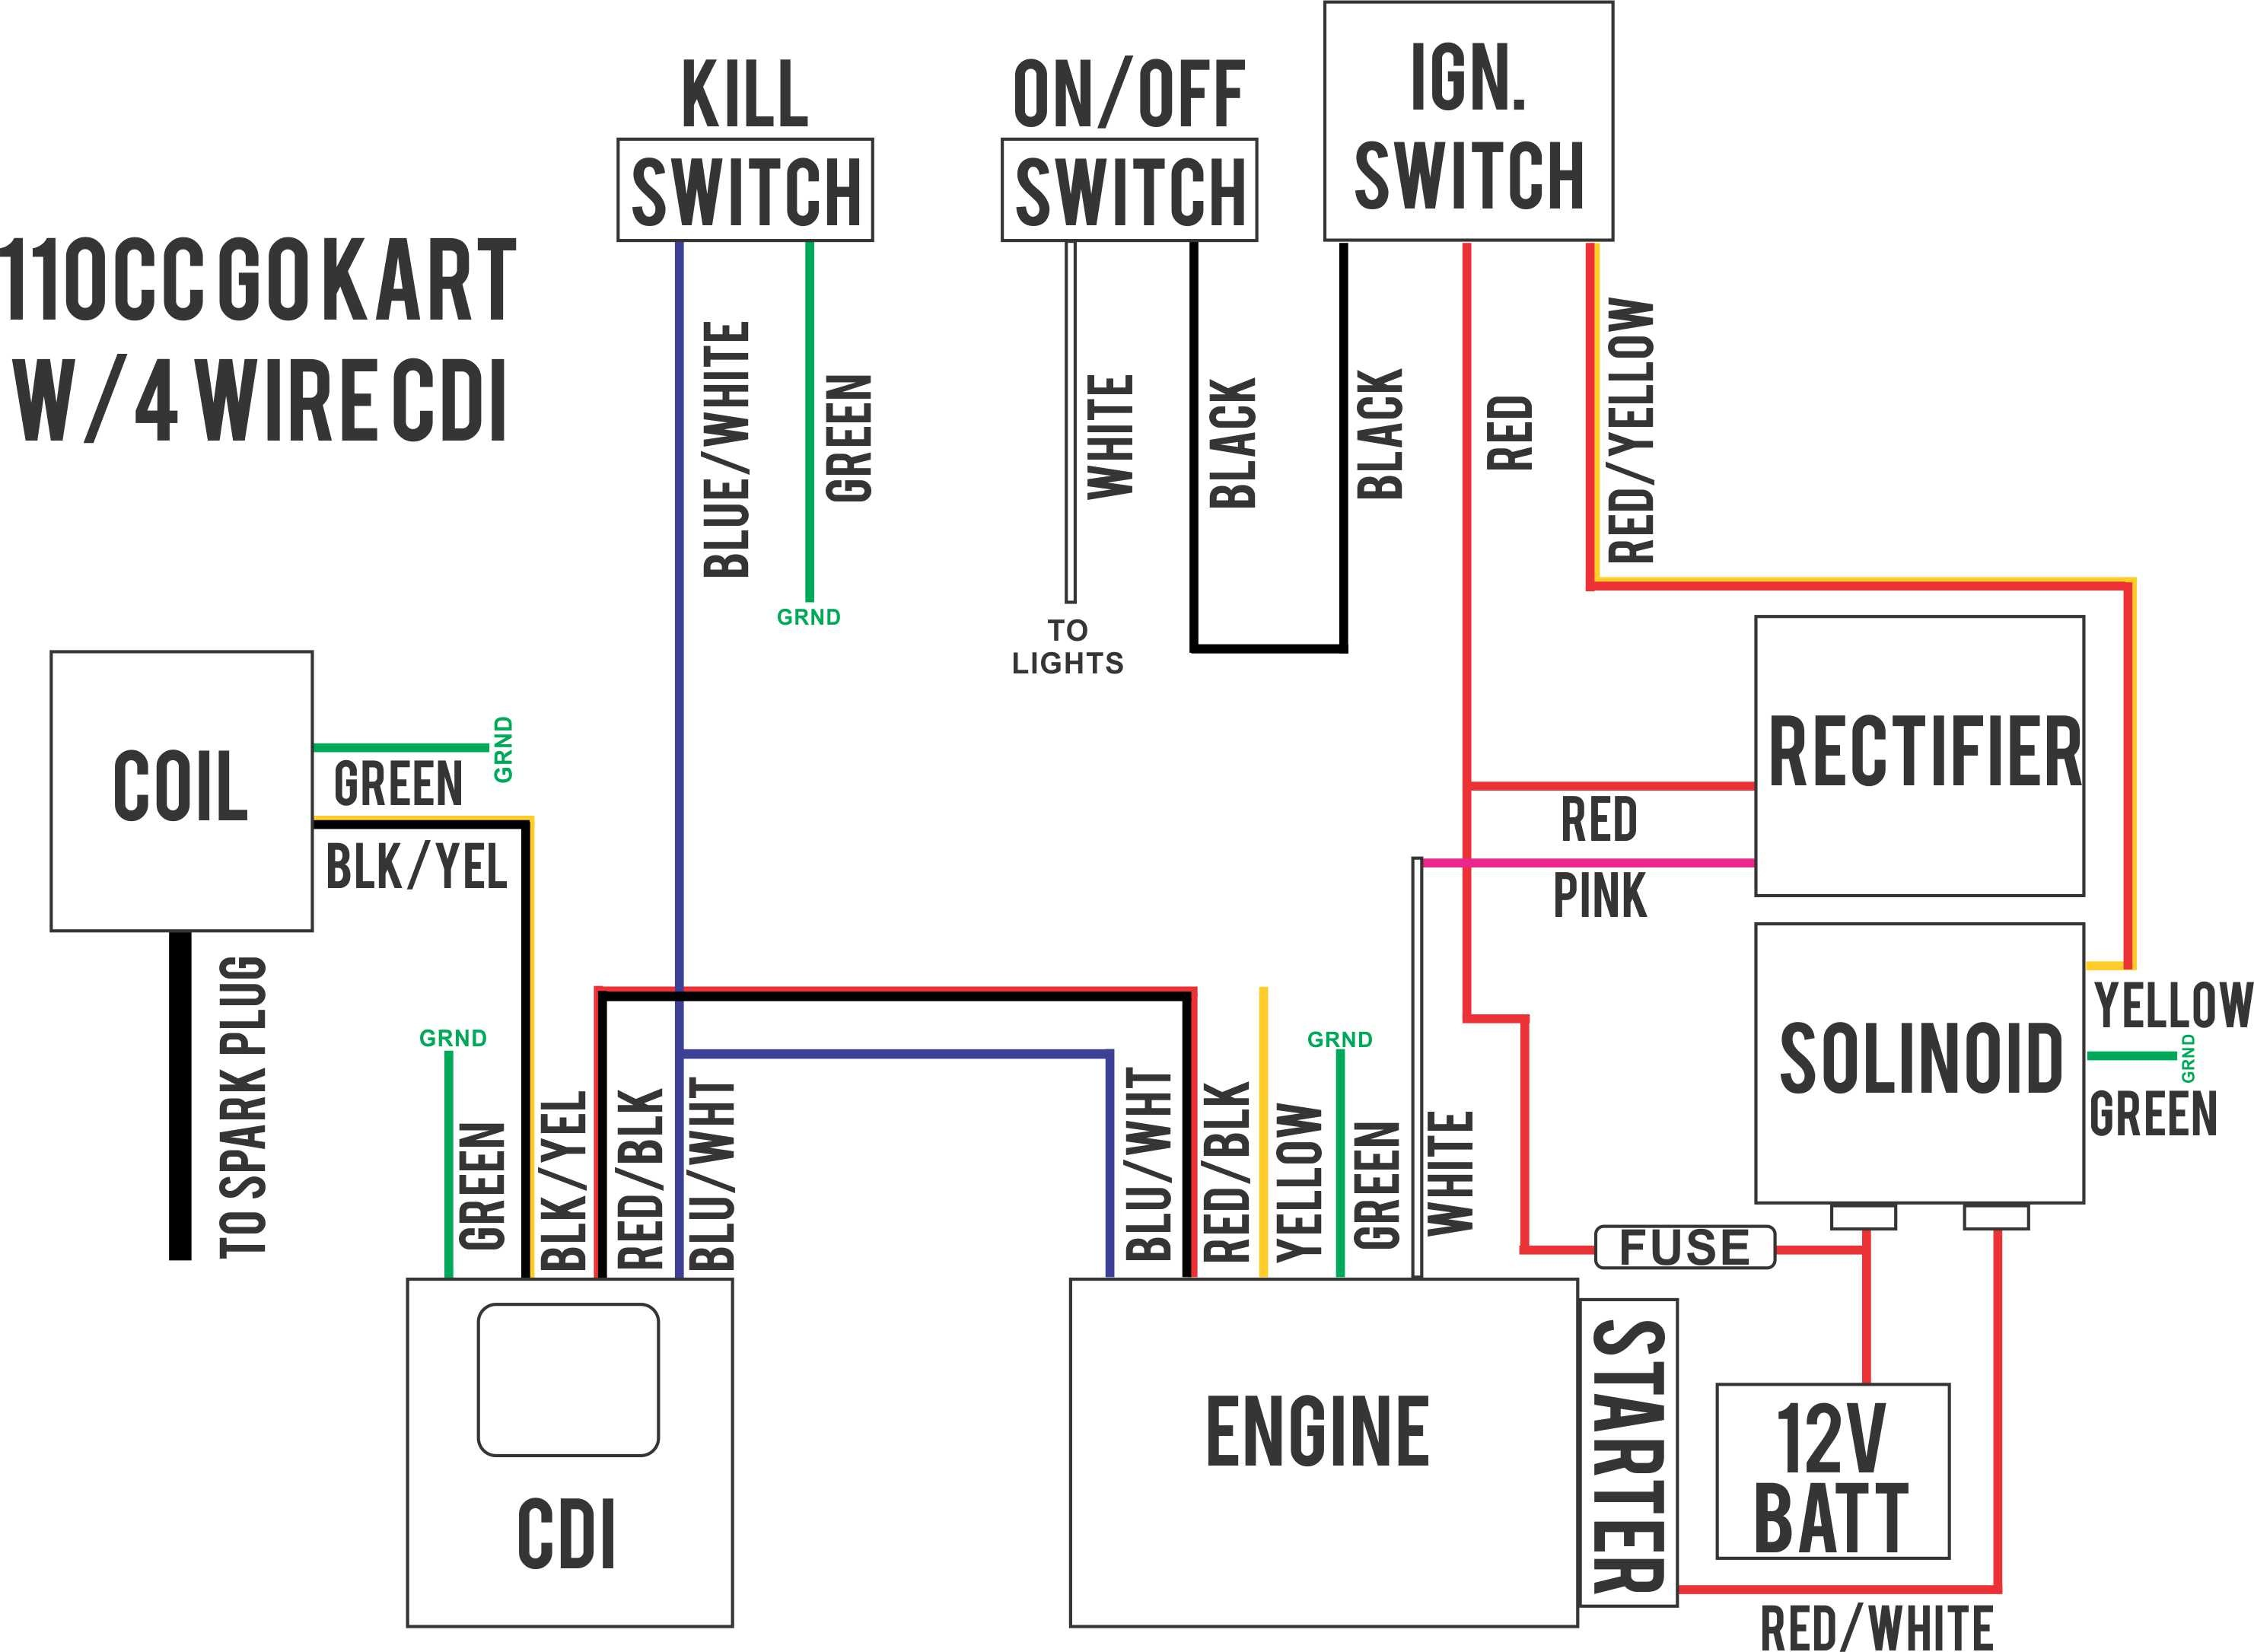 Wiring Diagram For Gy6 150 Buggy On Carter Go Kart Engine Diagram